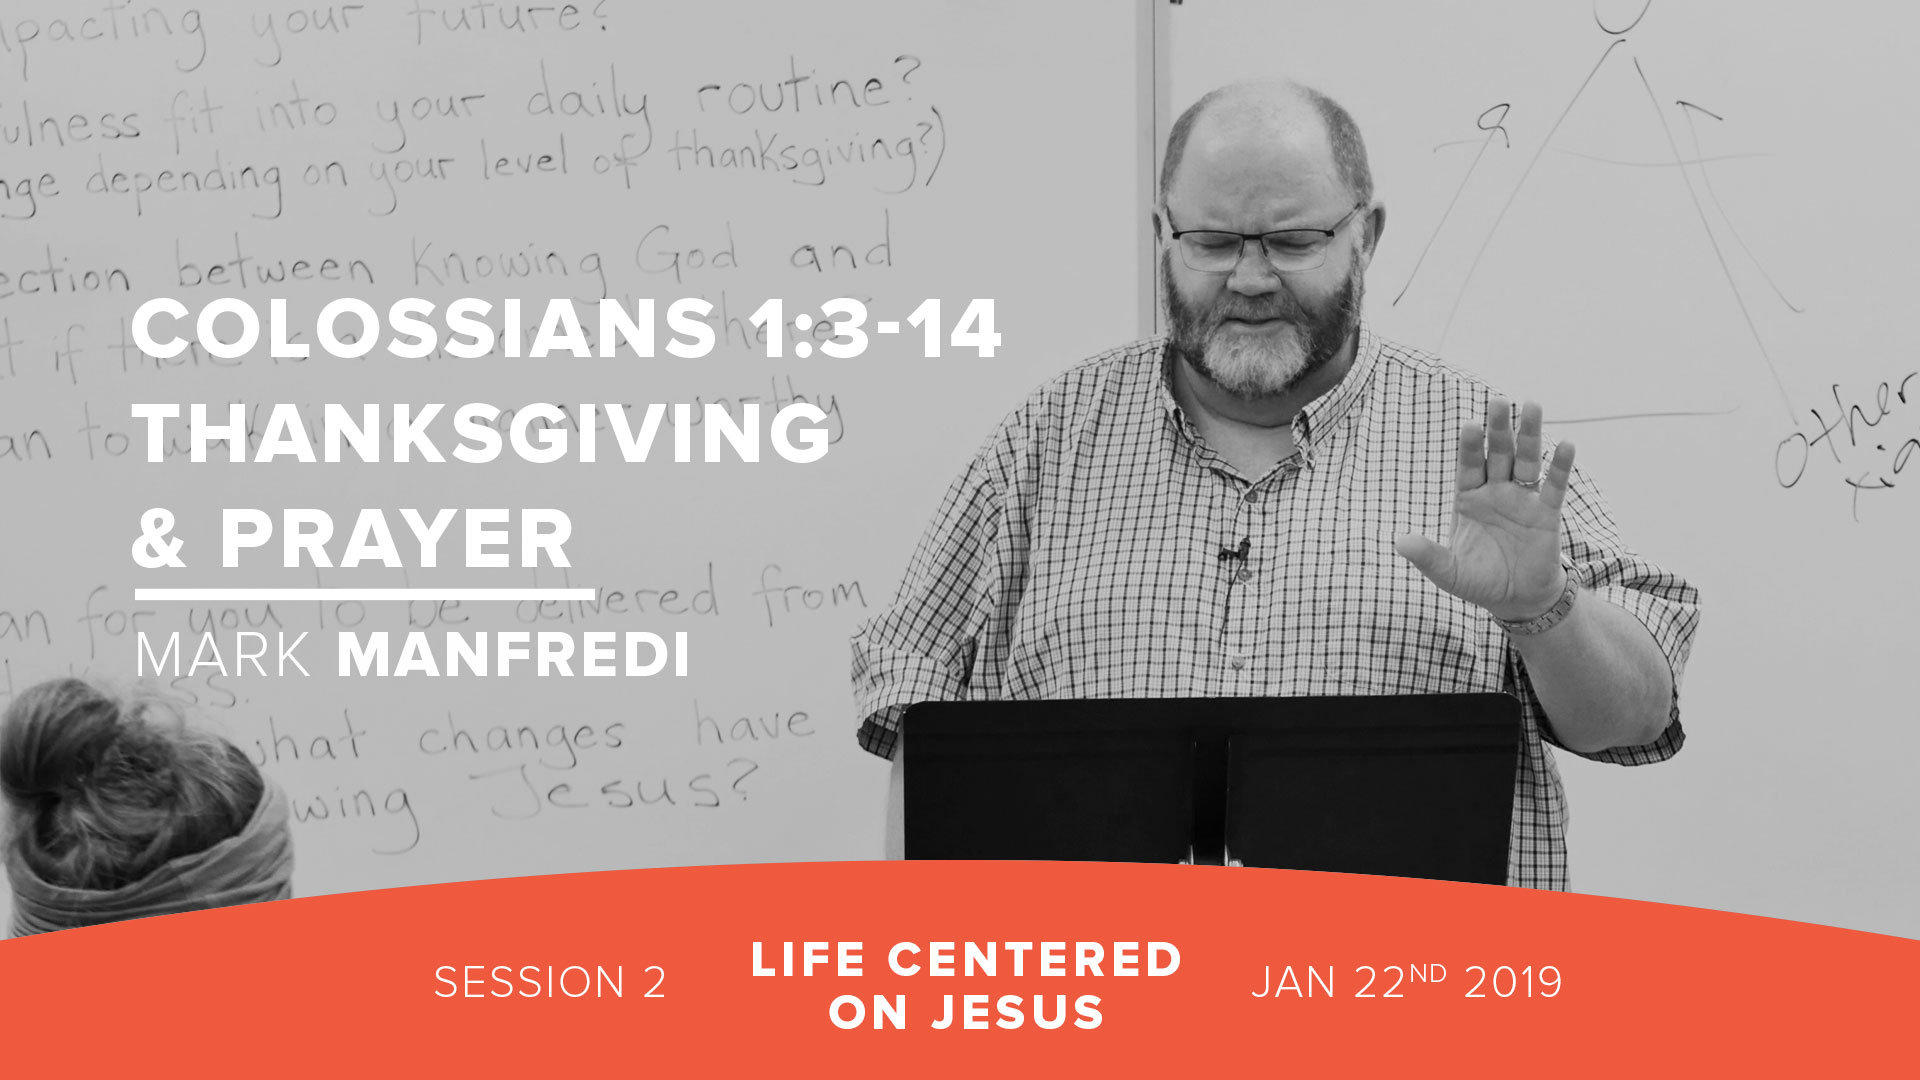 Session 2: Colossians 1:3-14